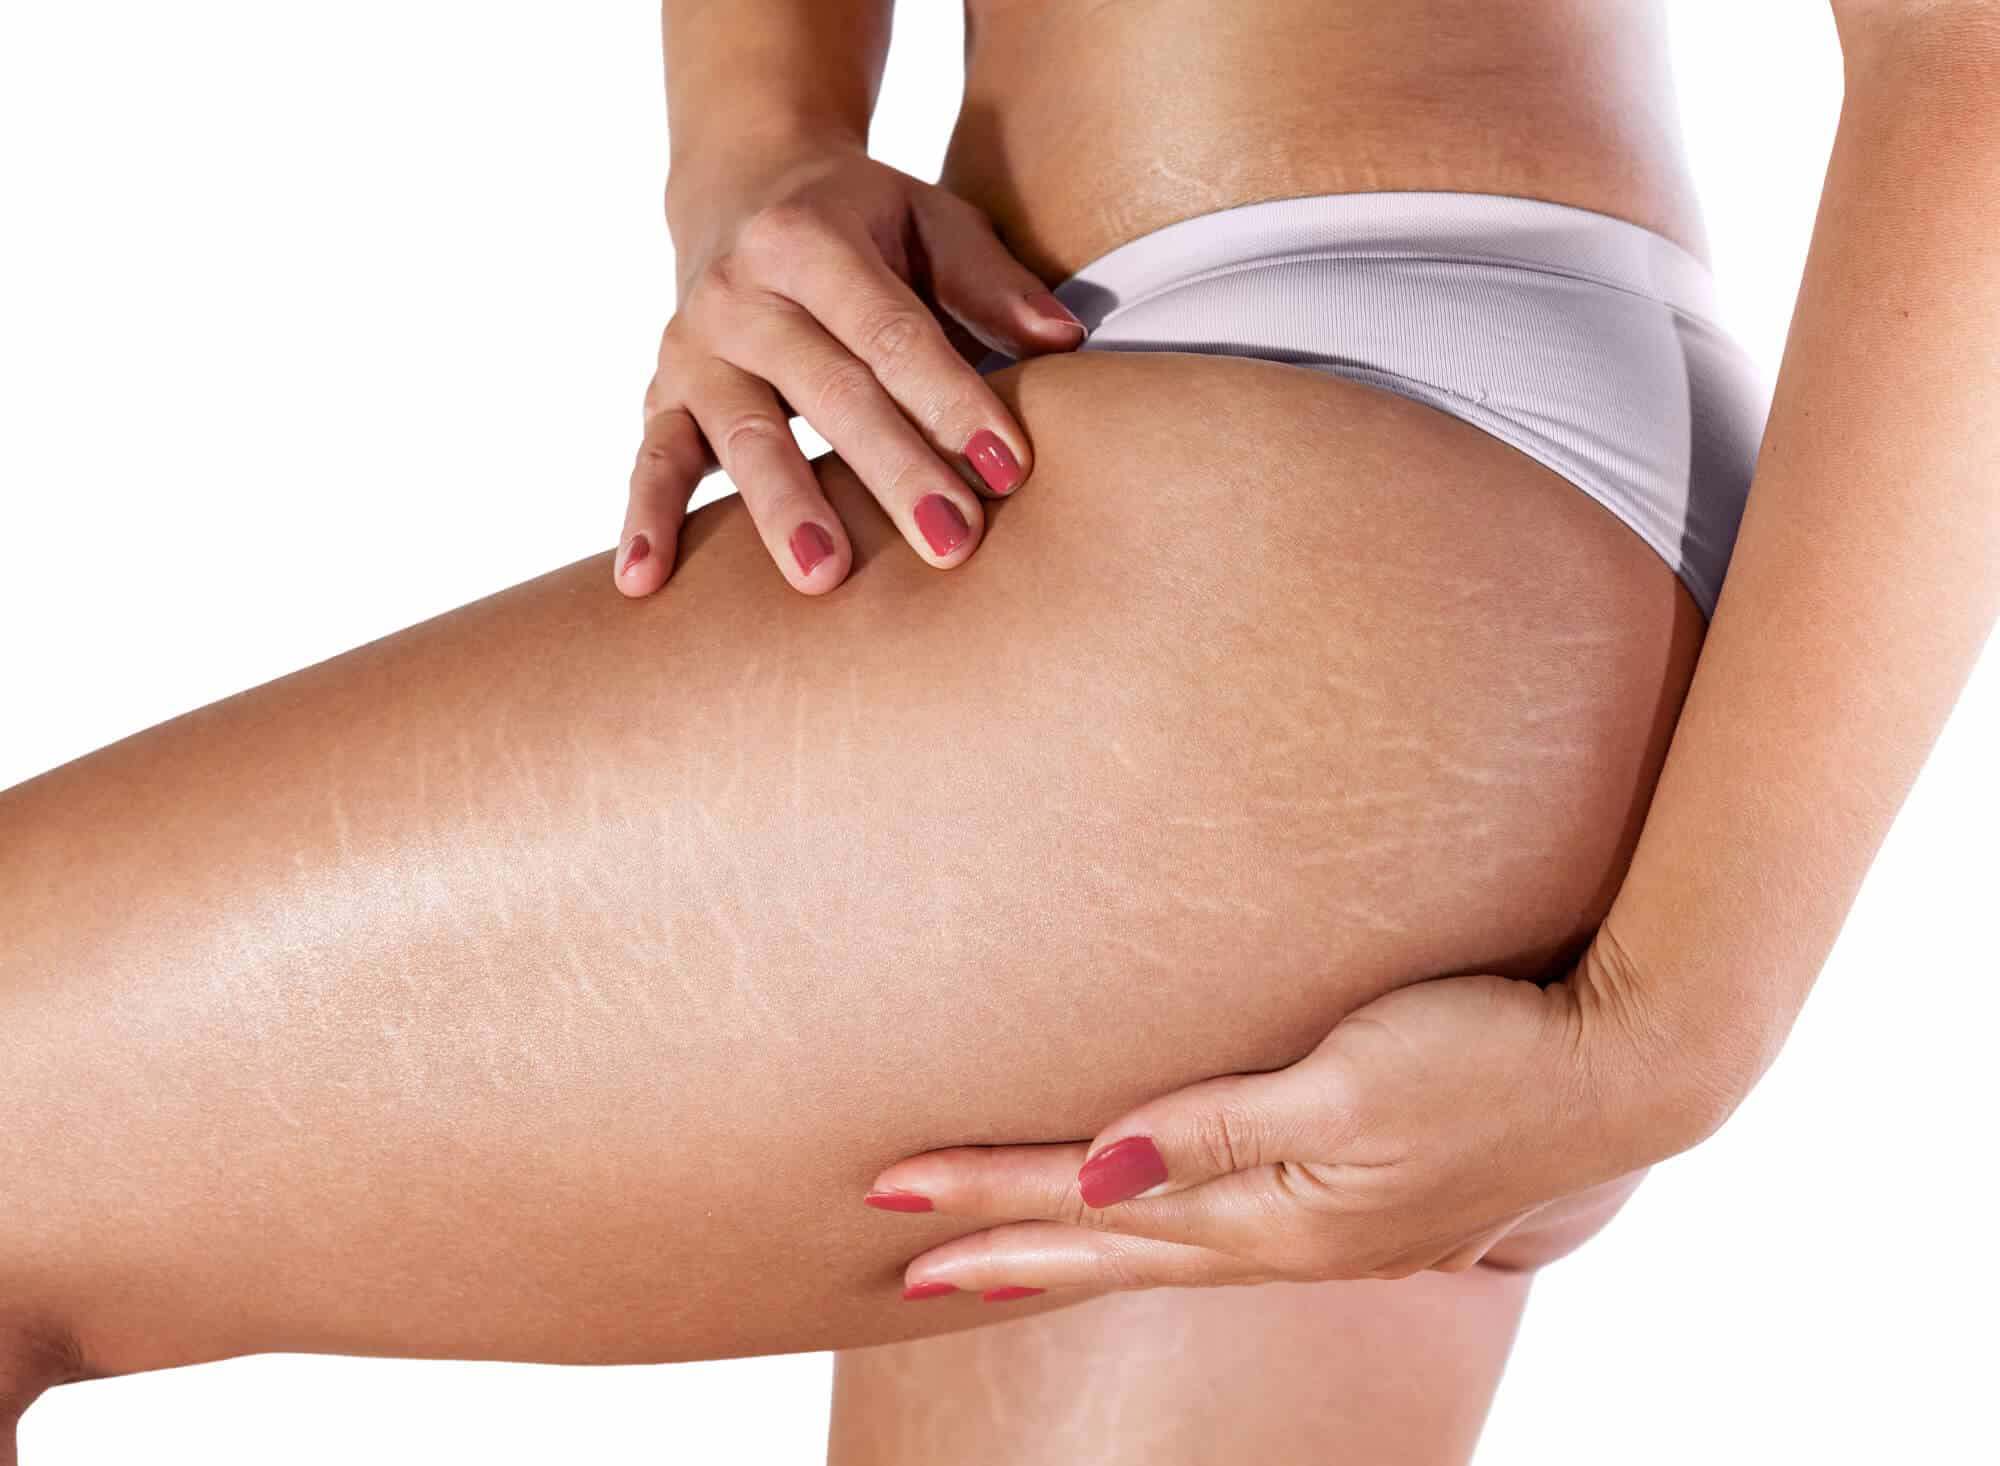 reduce the appearance of cellulite by dry skin brushing